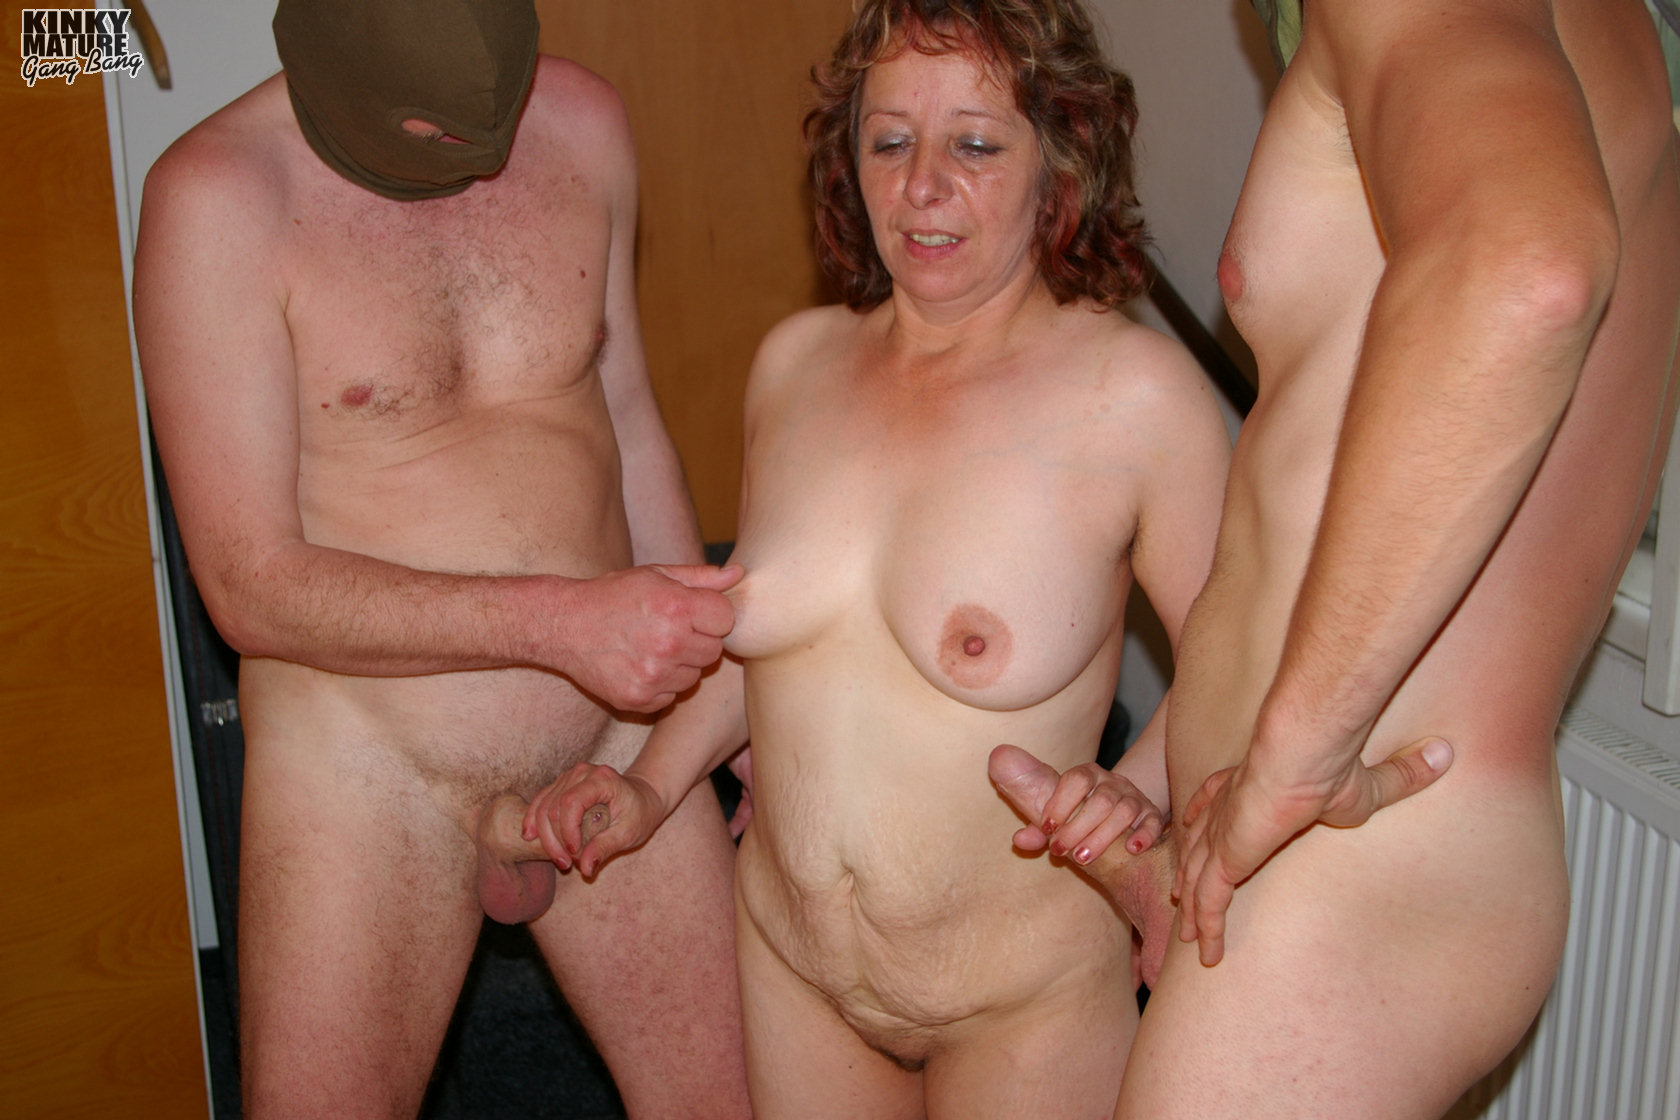 Linked secret amateur gangbang videos